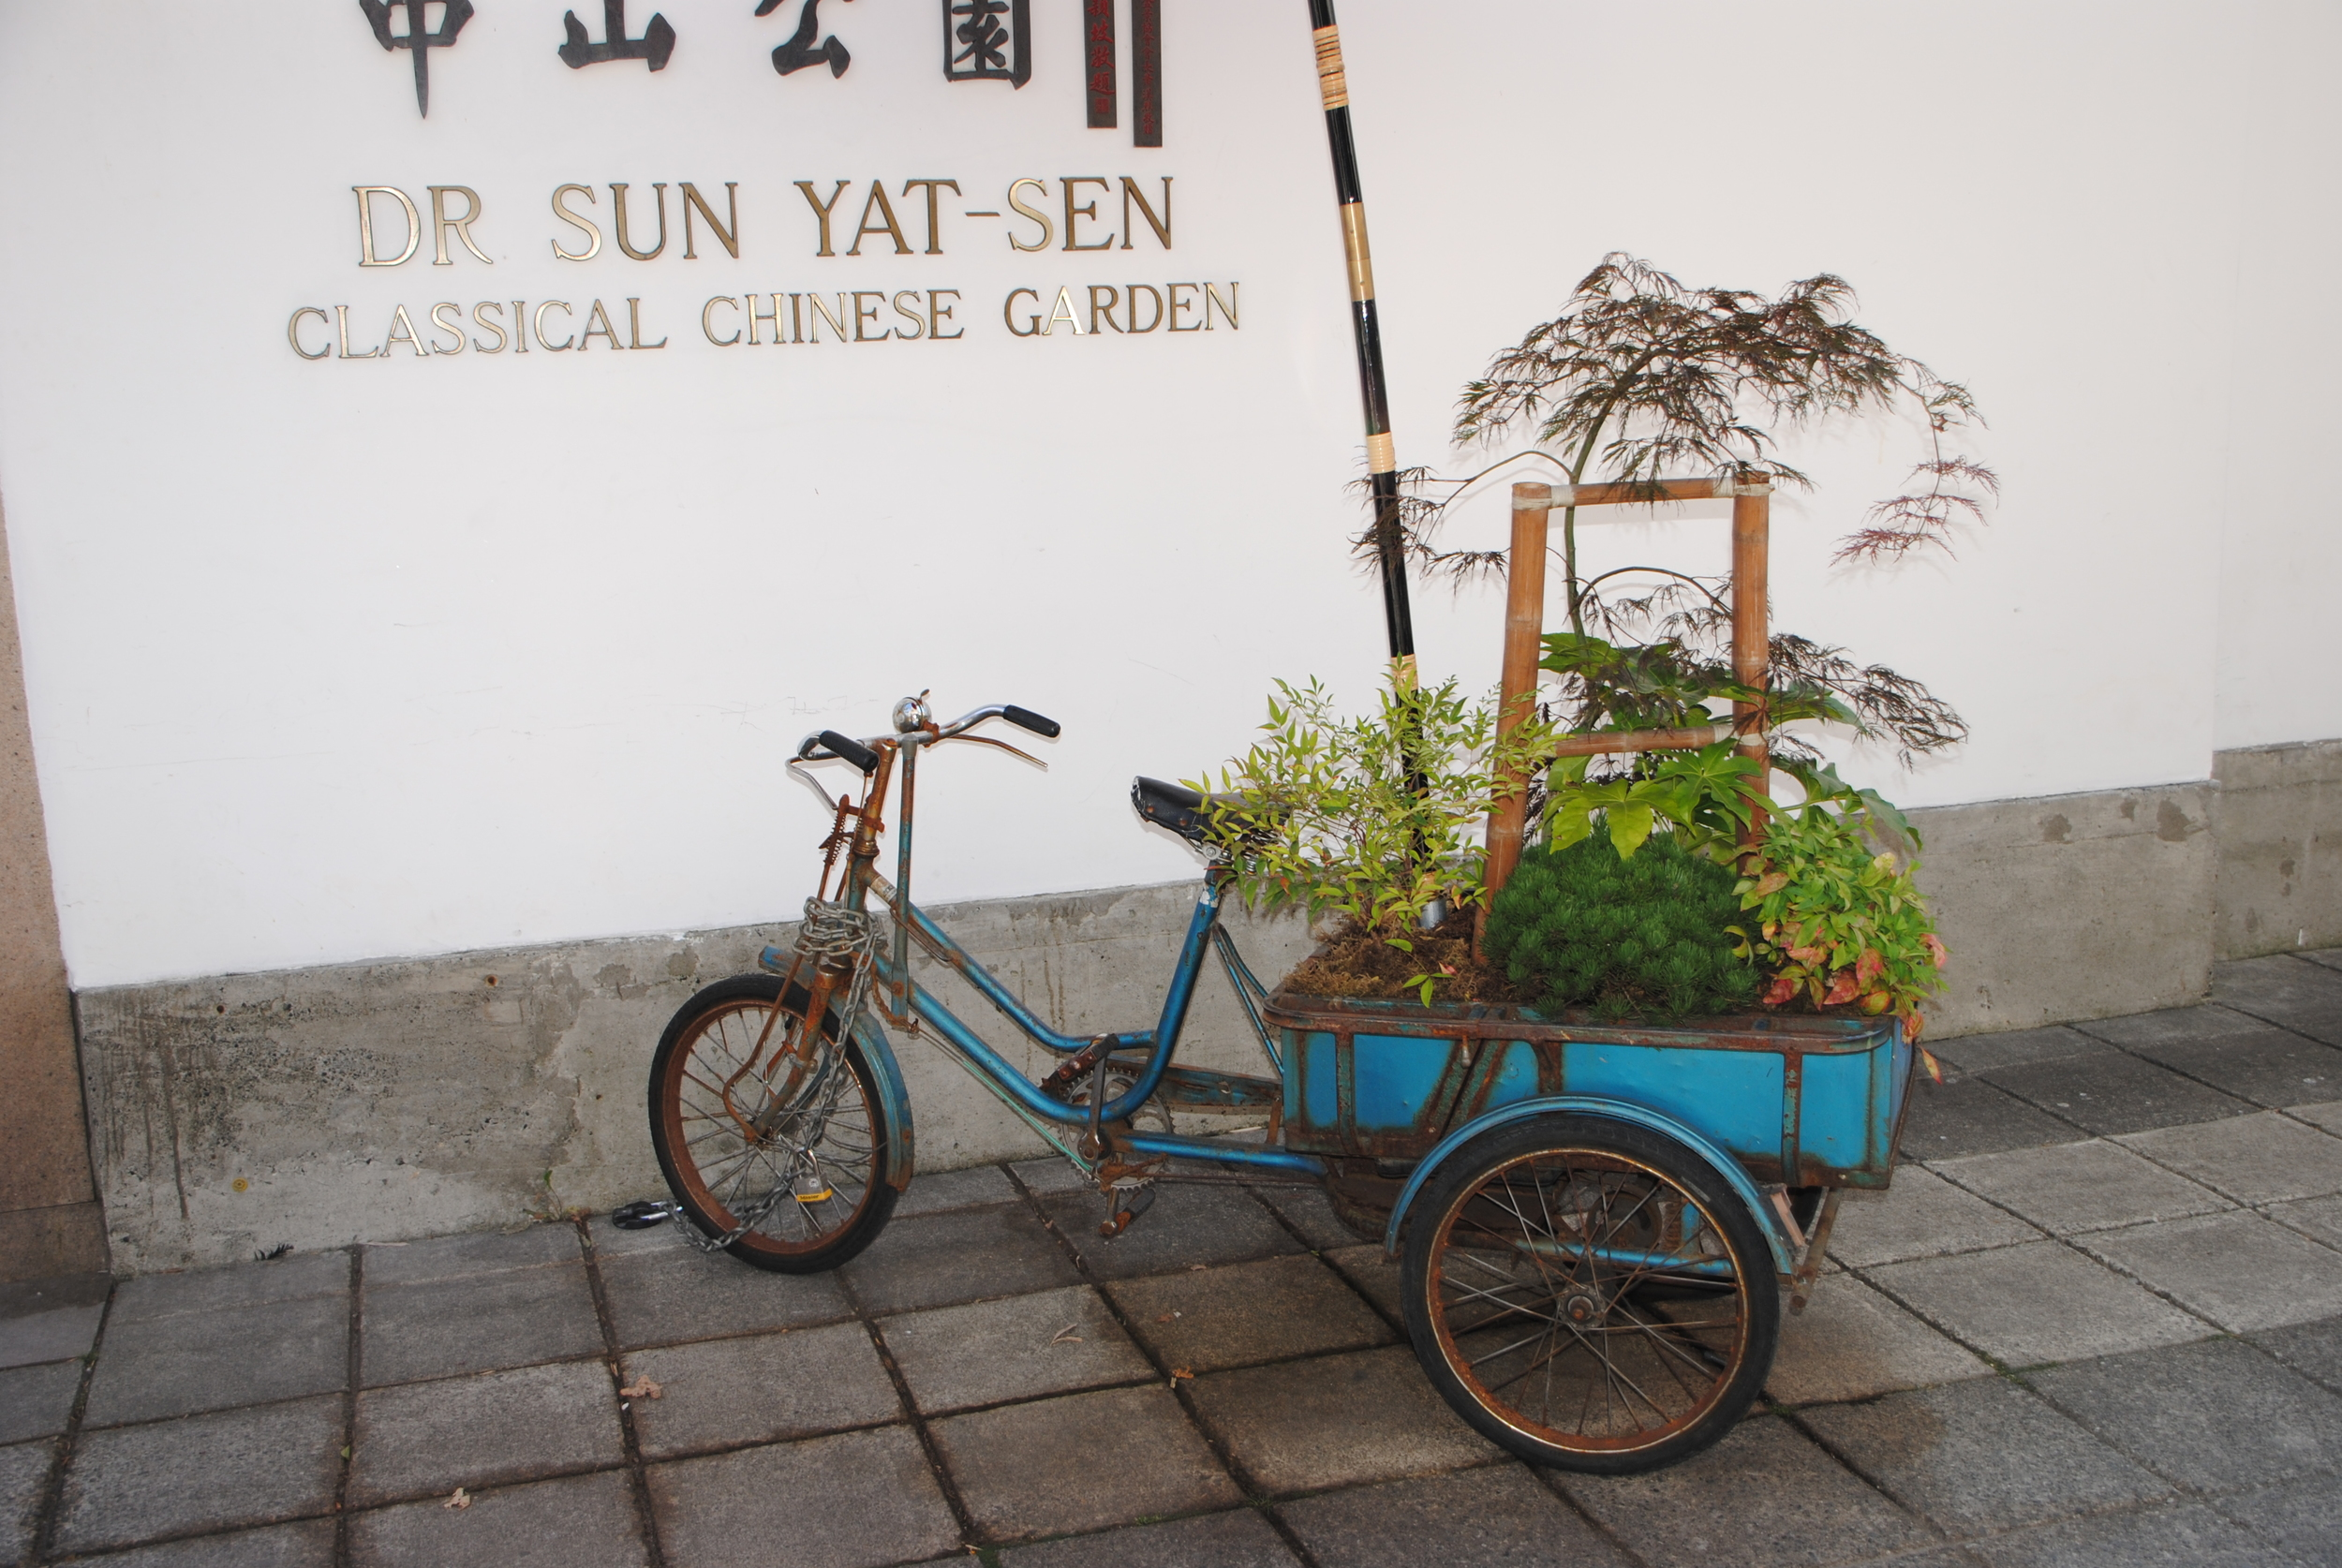 I'm not sure the bike dates to the Ming dynasty.